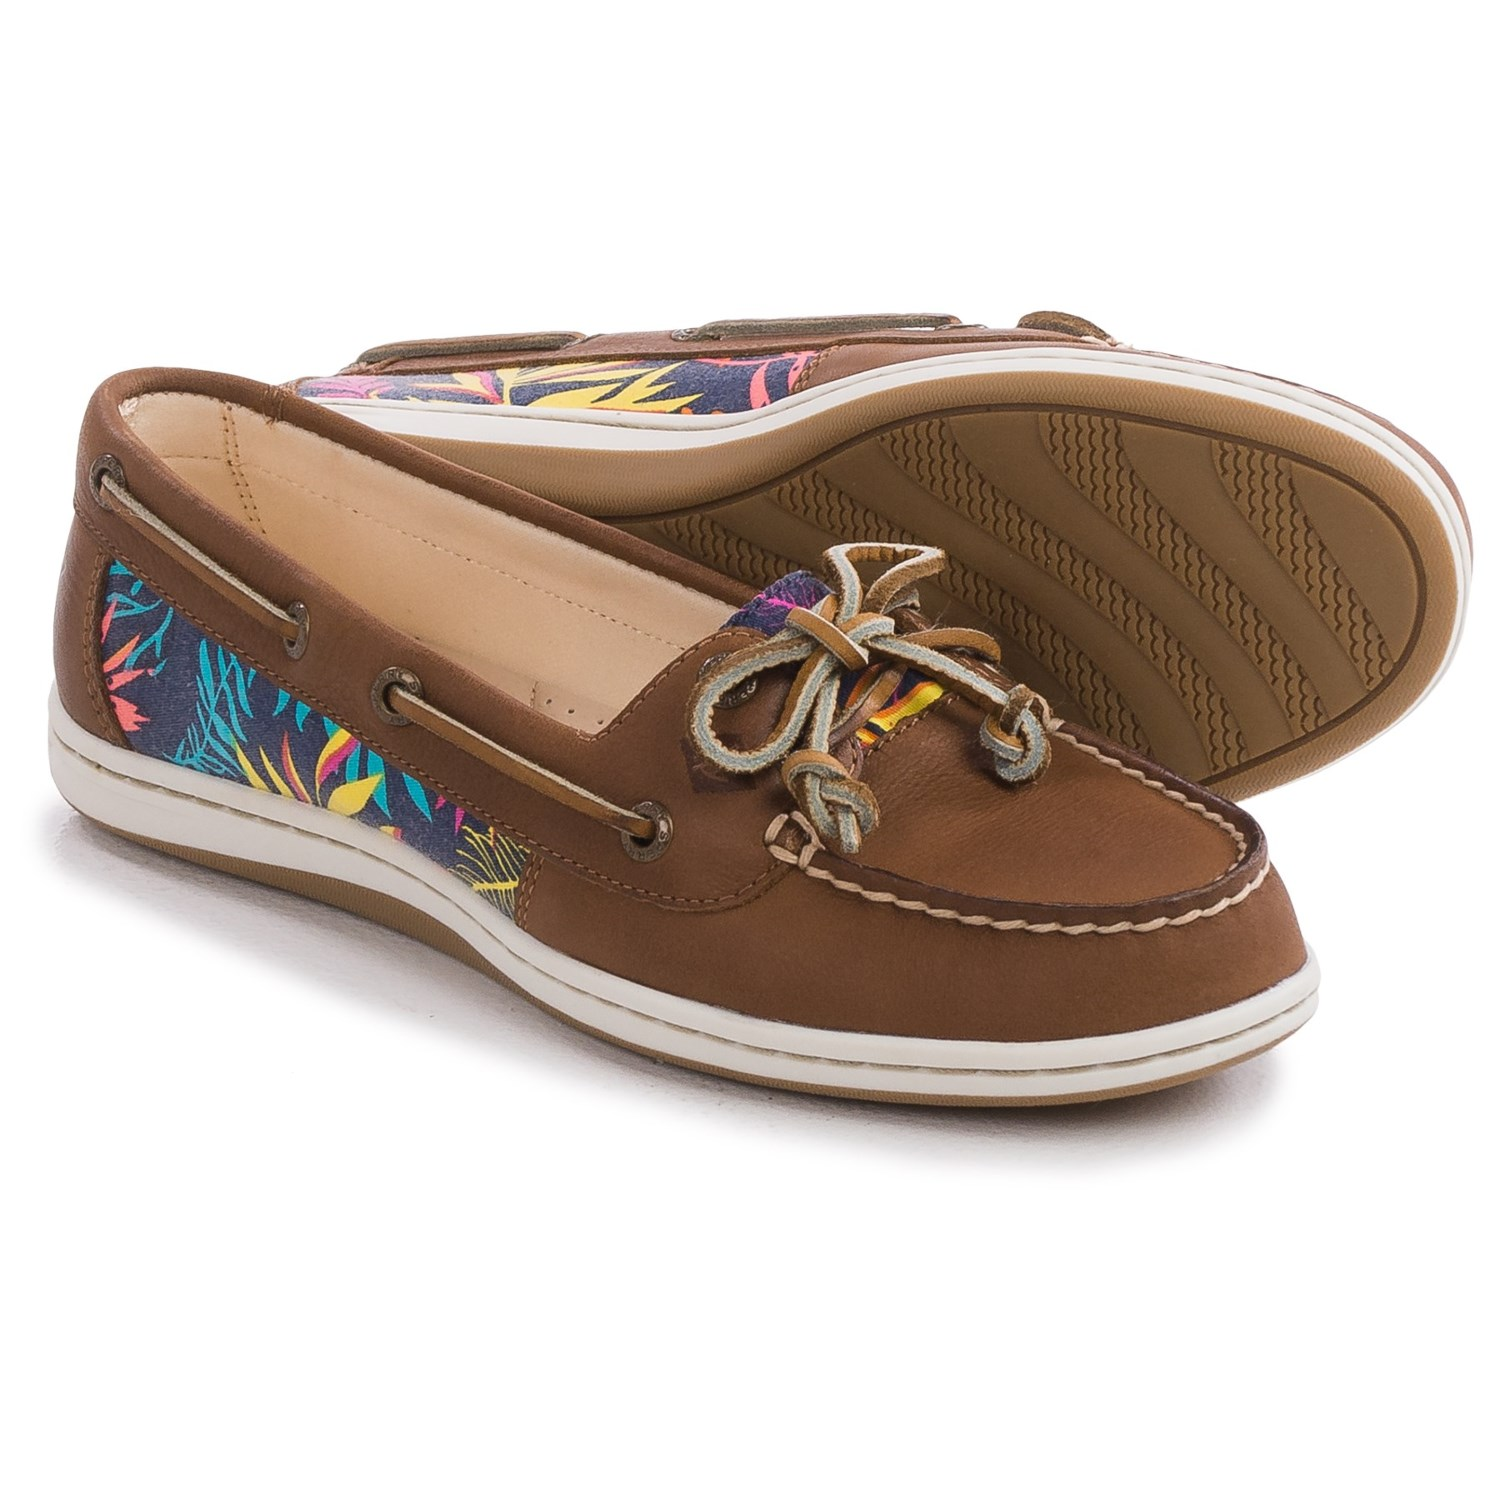 Sperry Canvas Boat Shoes Australia